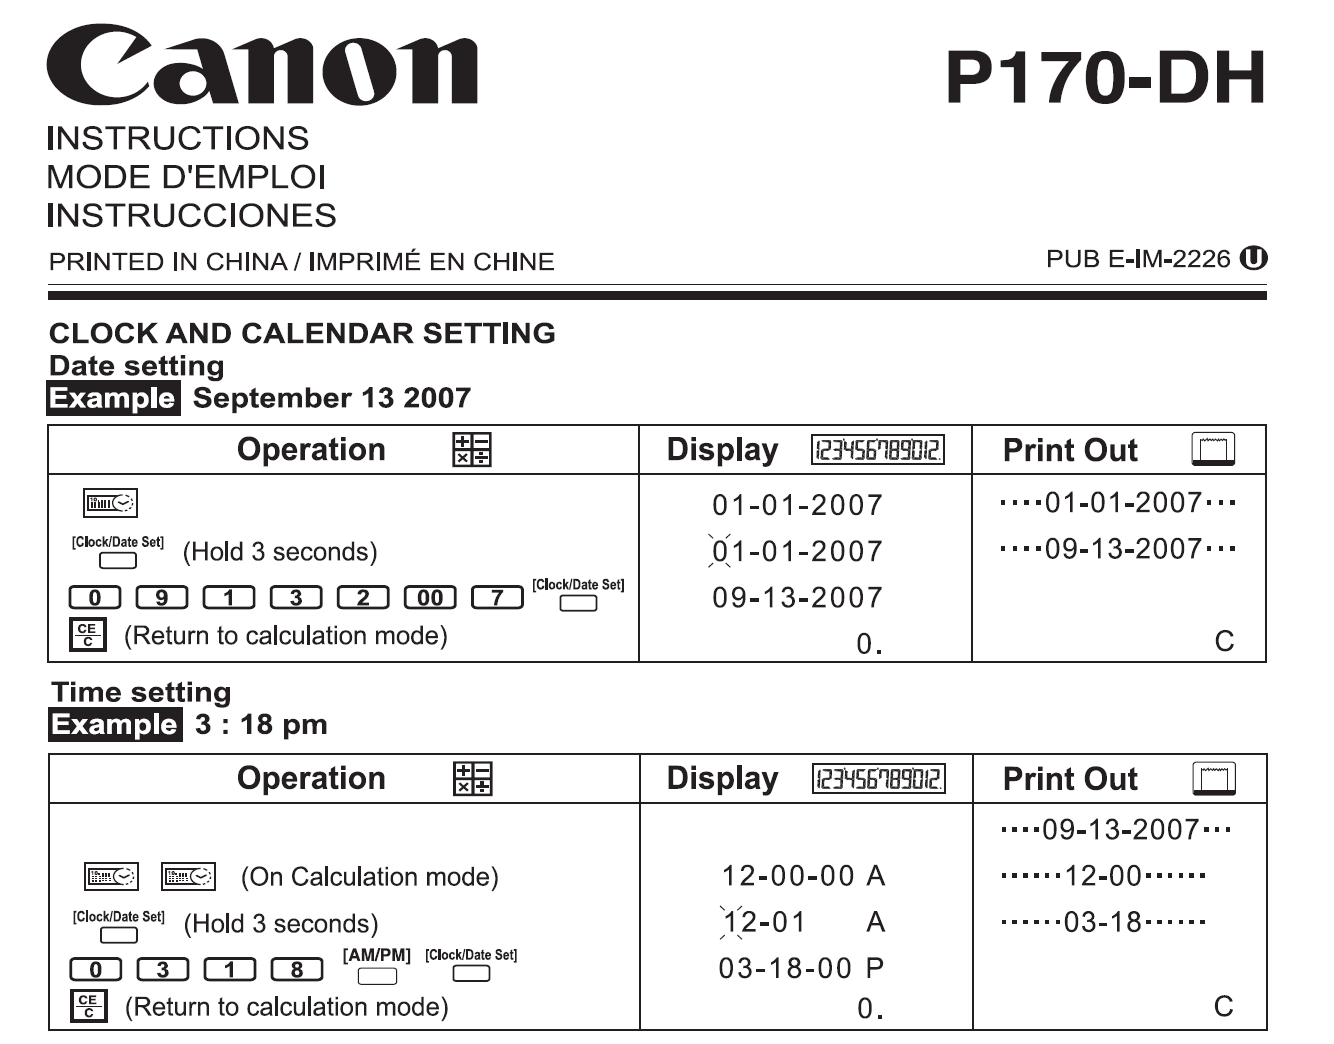 How Do I Reset The Date And Time On My Canon P170dh Calculator